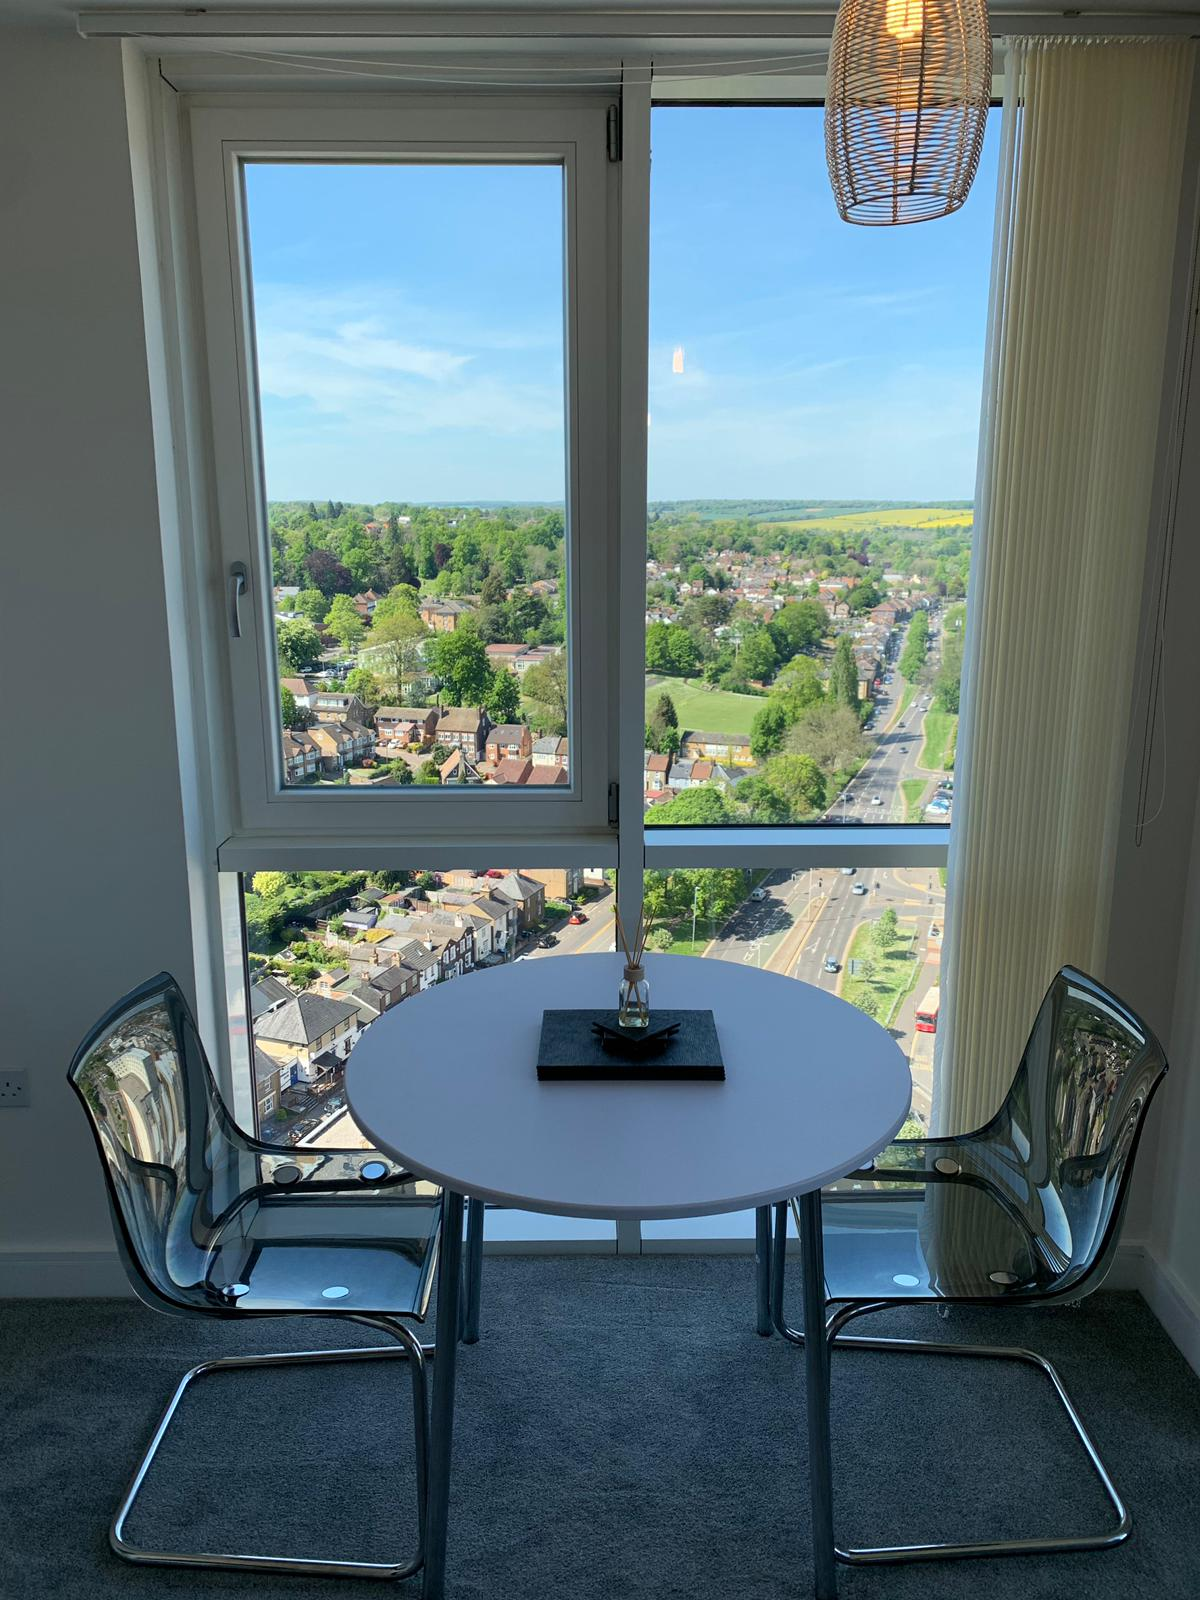 Dining table and view at KD Tower Serviced Apartments